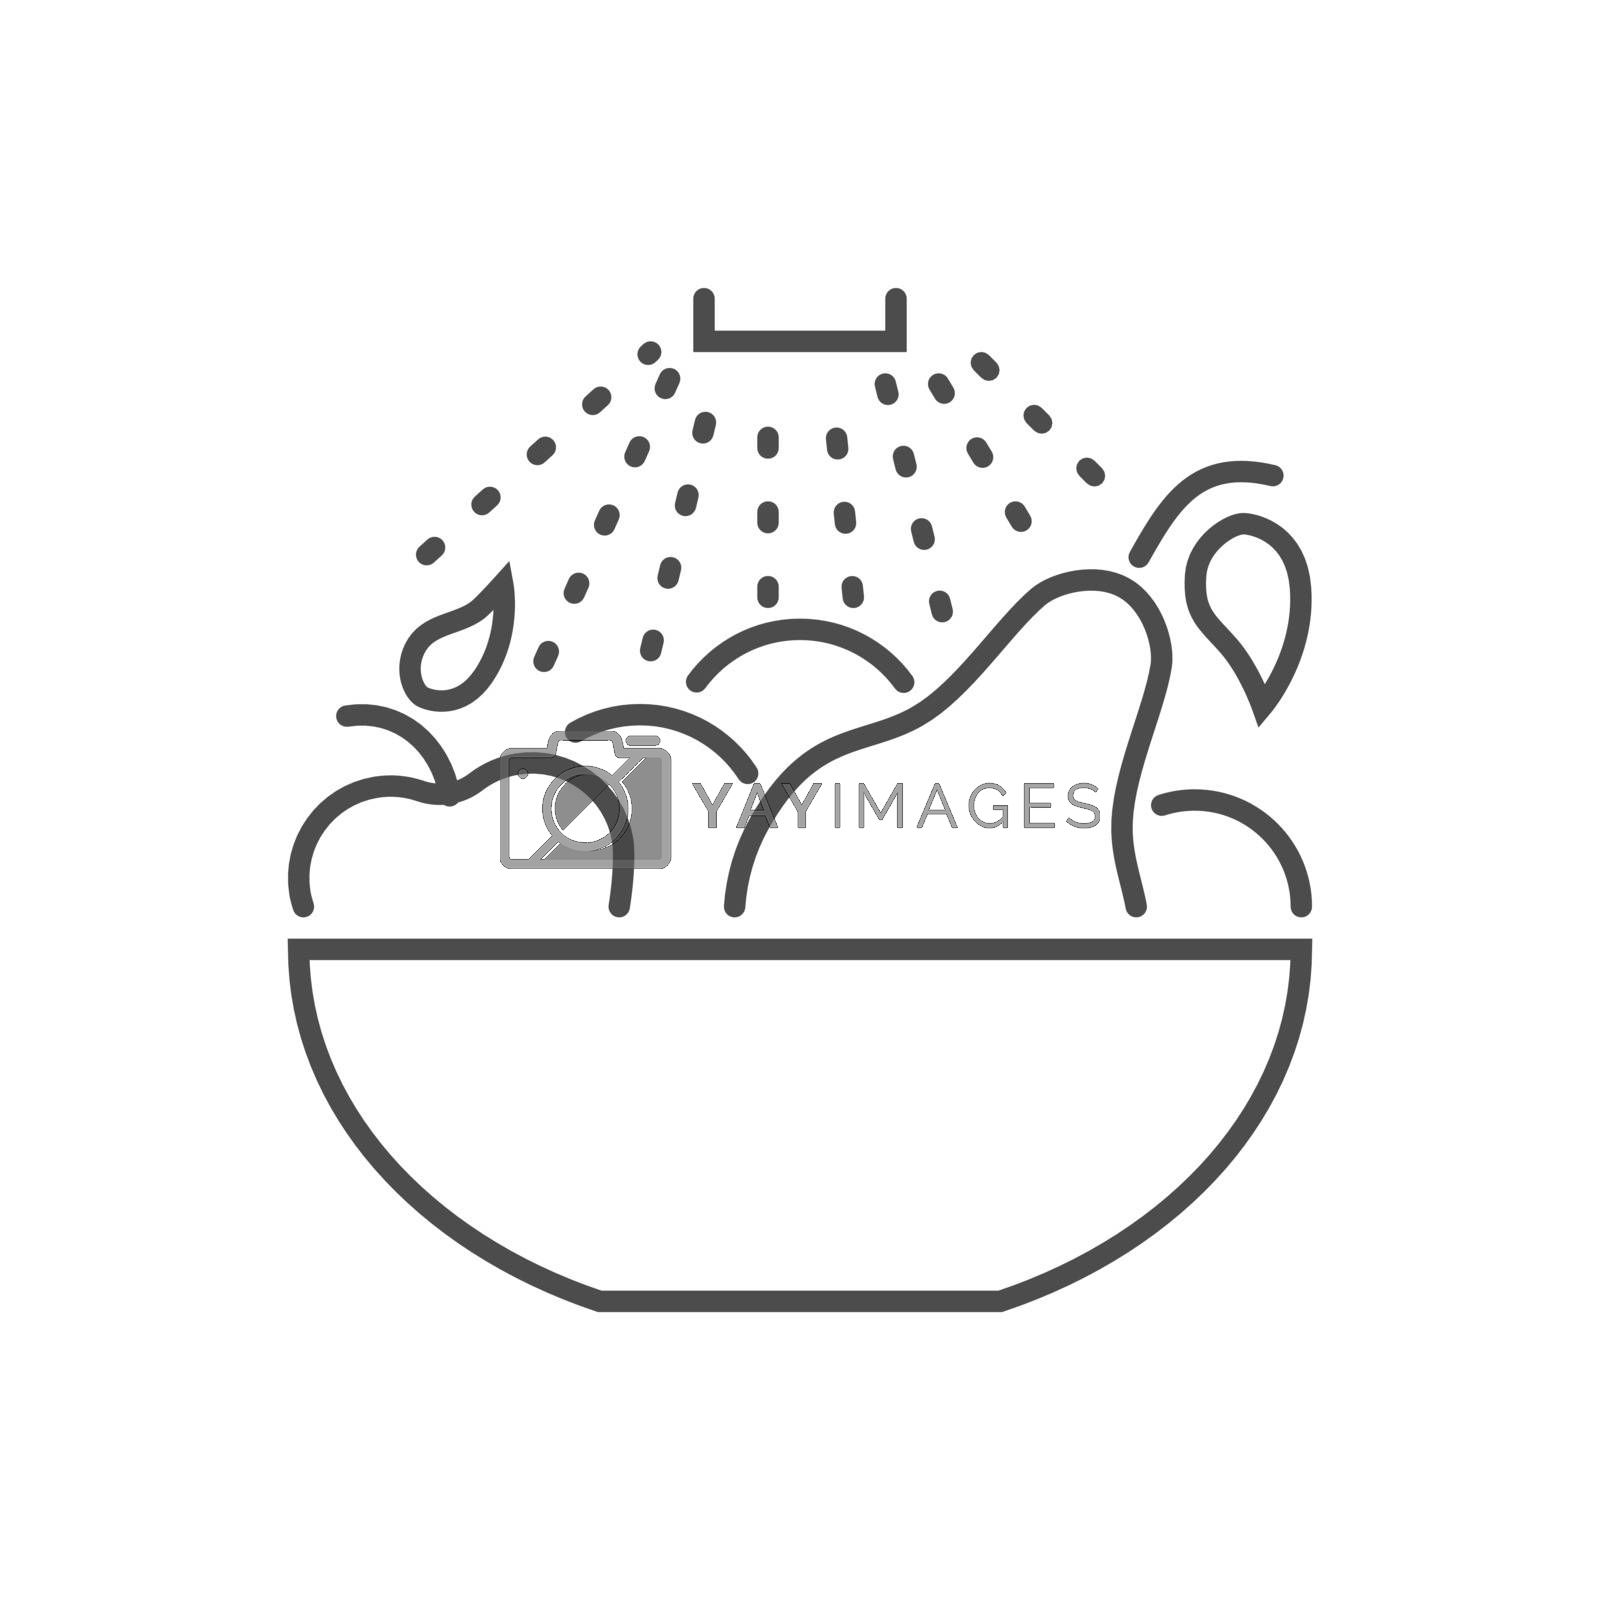 Wash fruits related vector thin line icon. Water is pouring on a bowl of fruit. Isolated on white background. Editable stroke. Vector illustration.